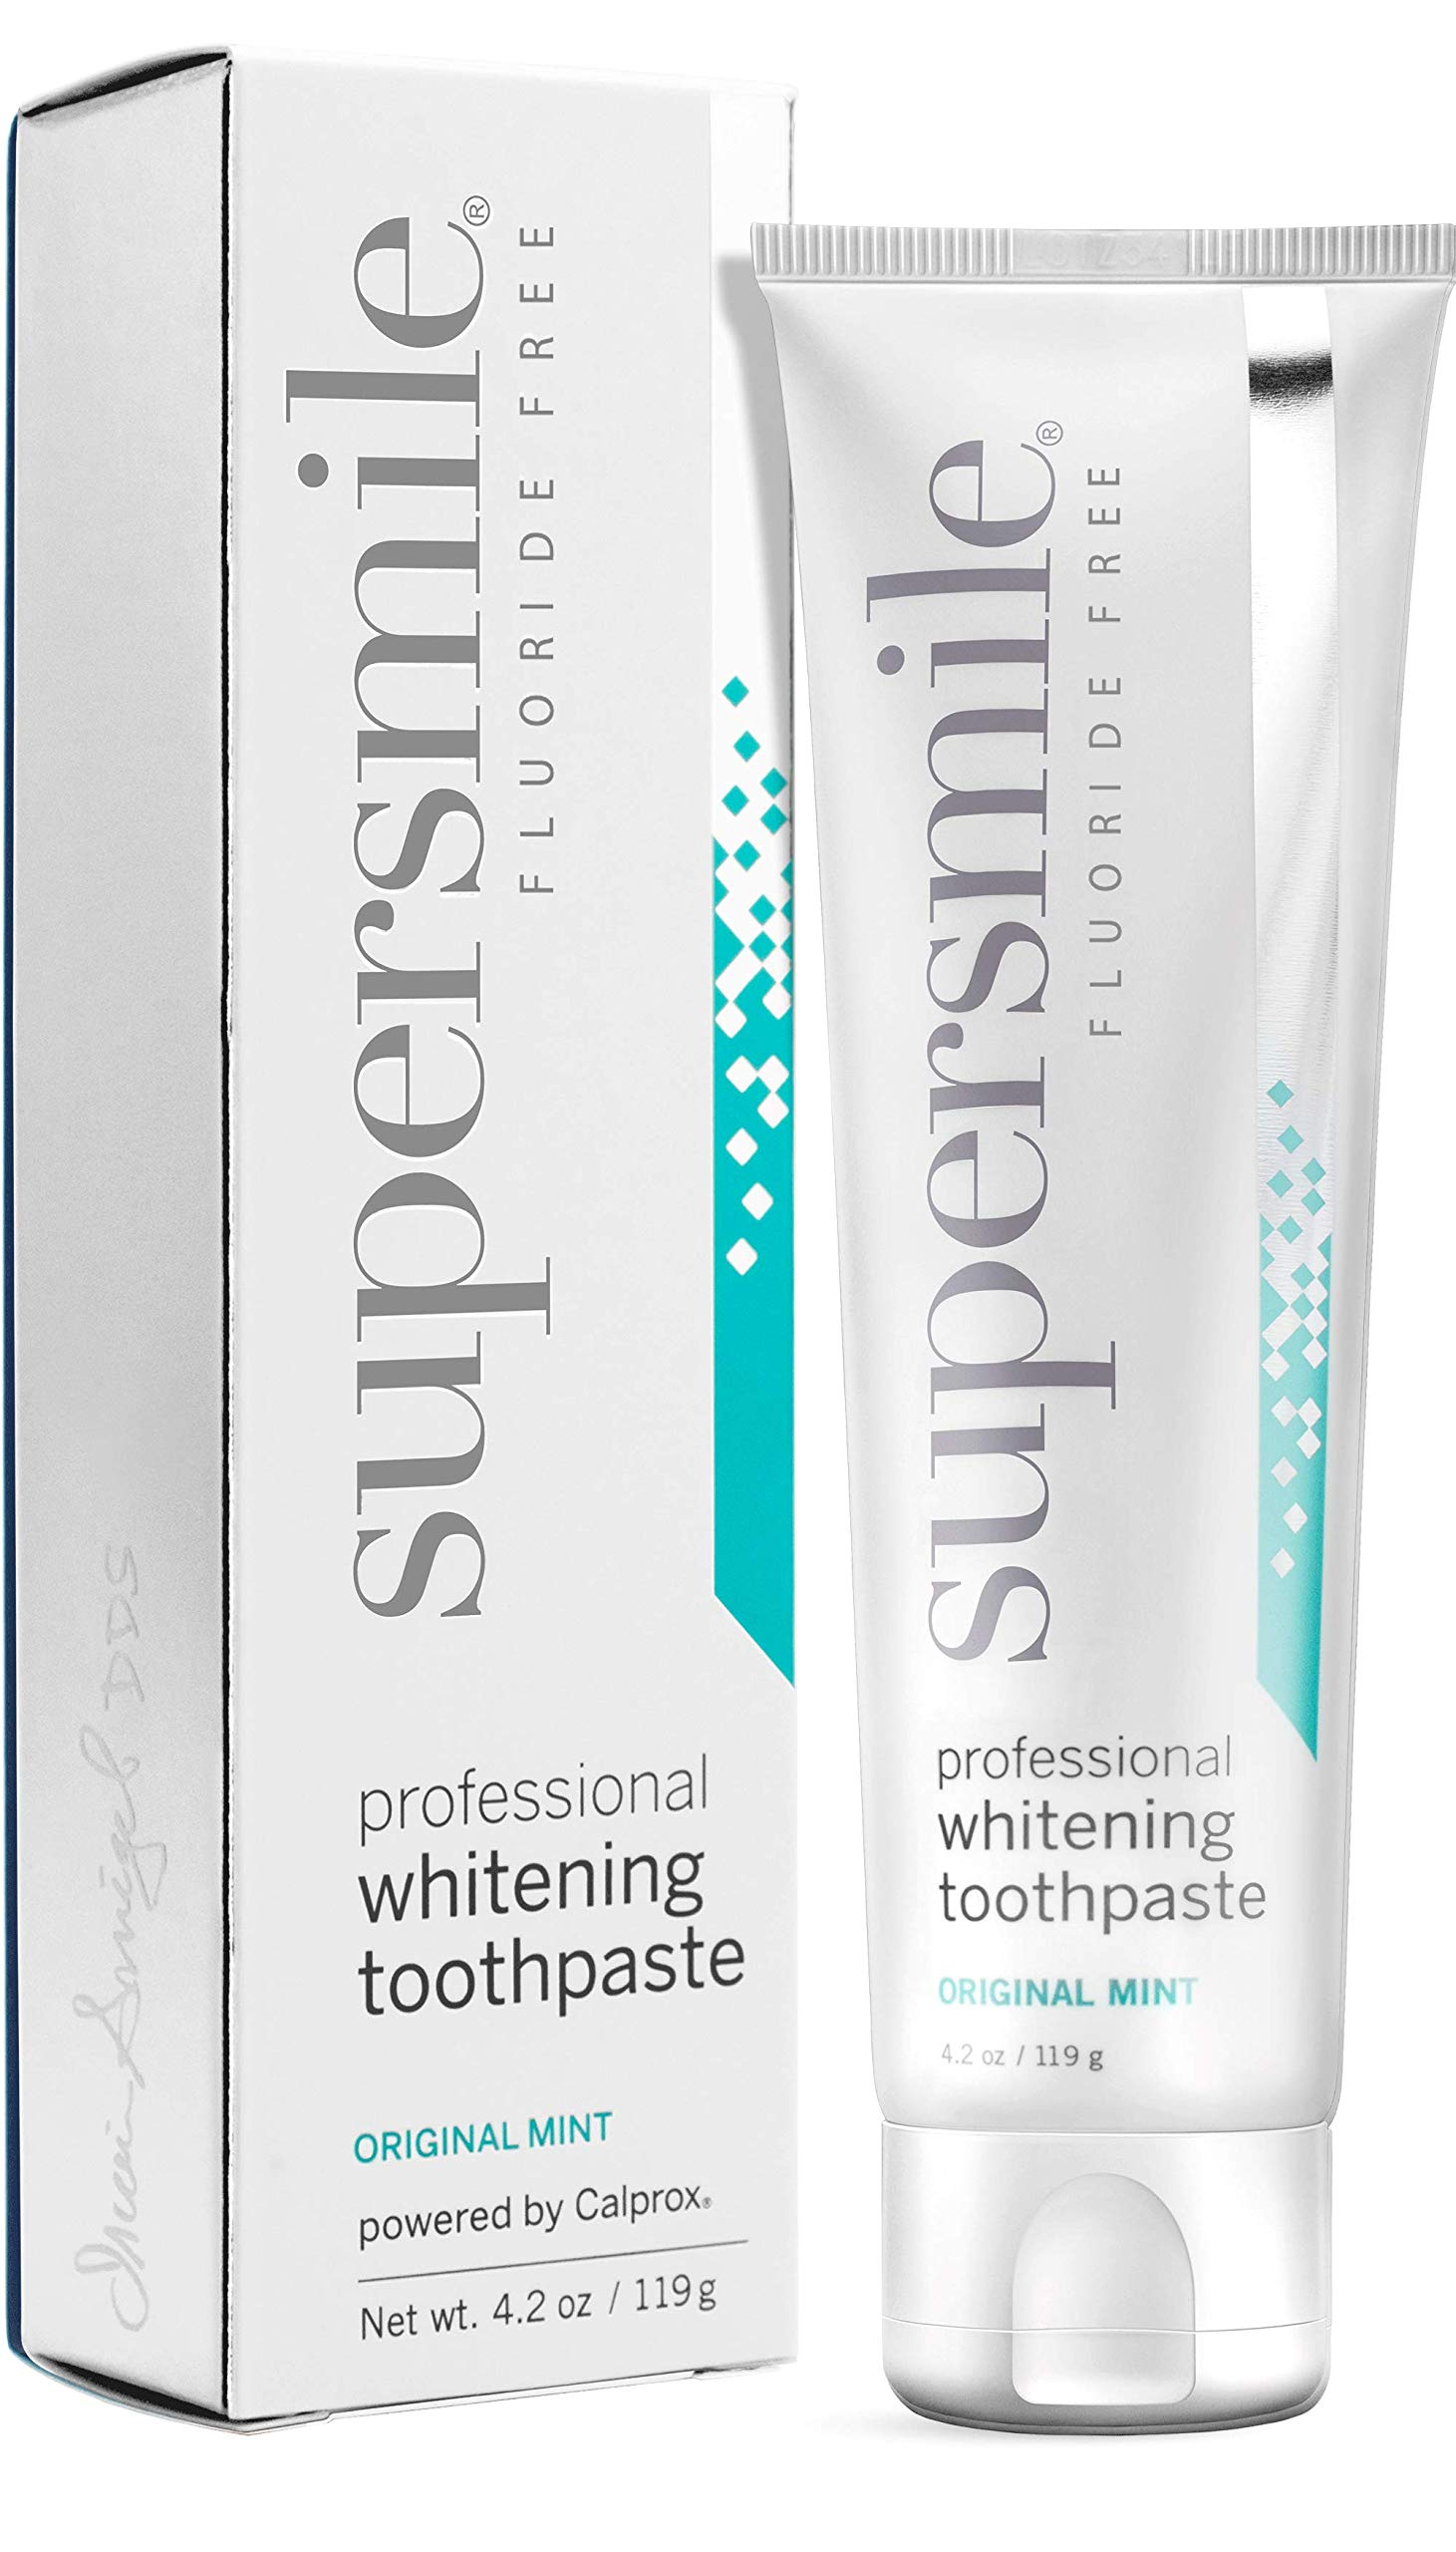 Supersmile Professional Teeth Whitening Toothpaste - Fluoride Free - Clinically Proven to Remove Stains & Whiten Teeth Up to 6 Shades - Enamel Strengthening - No Sensitivity (Original Mint, 4.2 oz.) by Supersmile